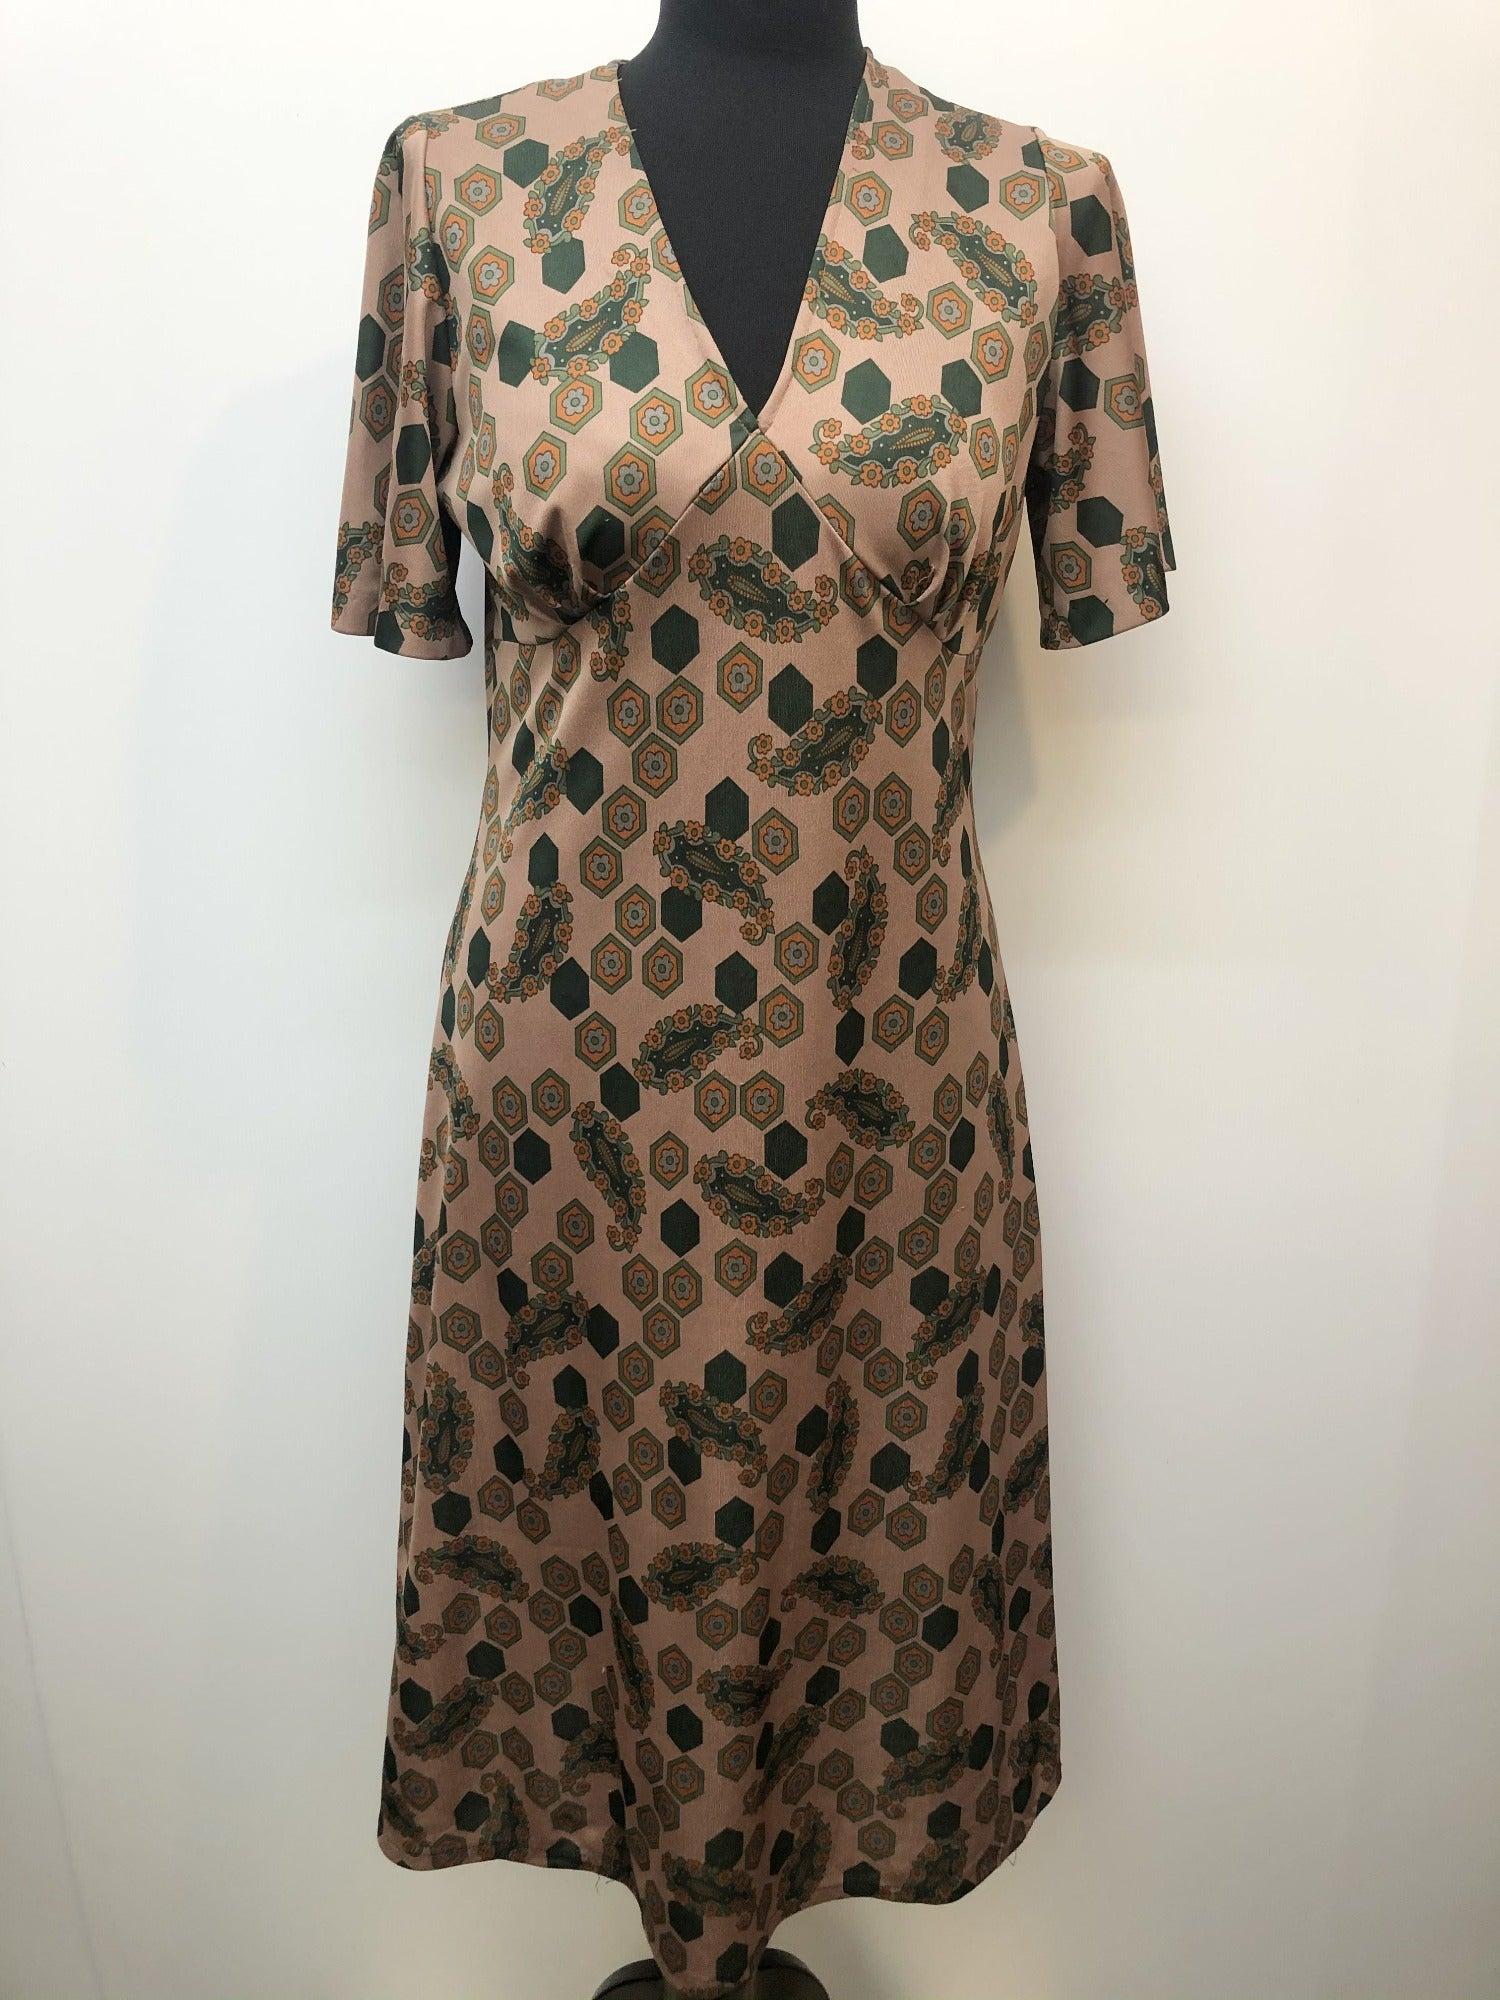 womens  vintage  retro  Paisley Print  paisley  midi dress  midi  hexagon print  green print  dress  brown  70s  1970s  10 urban village vintage